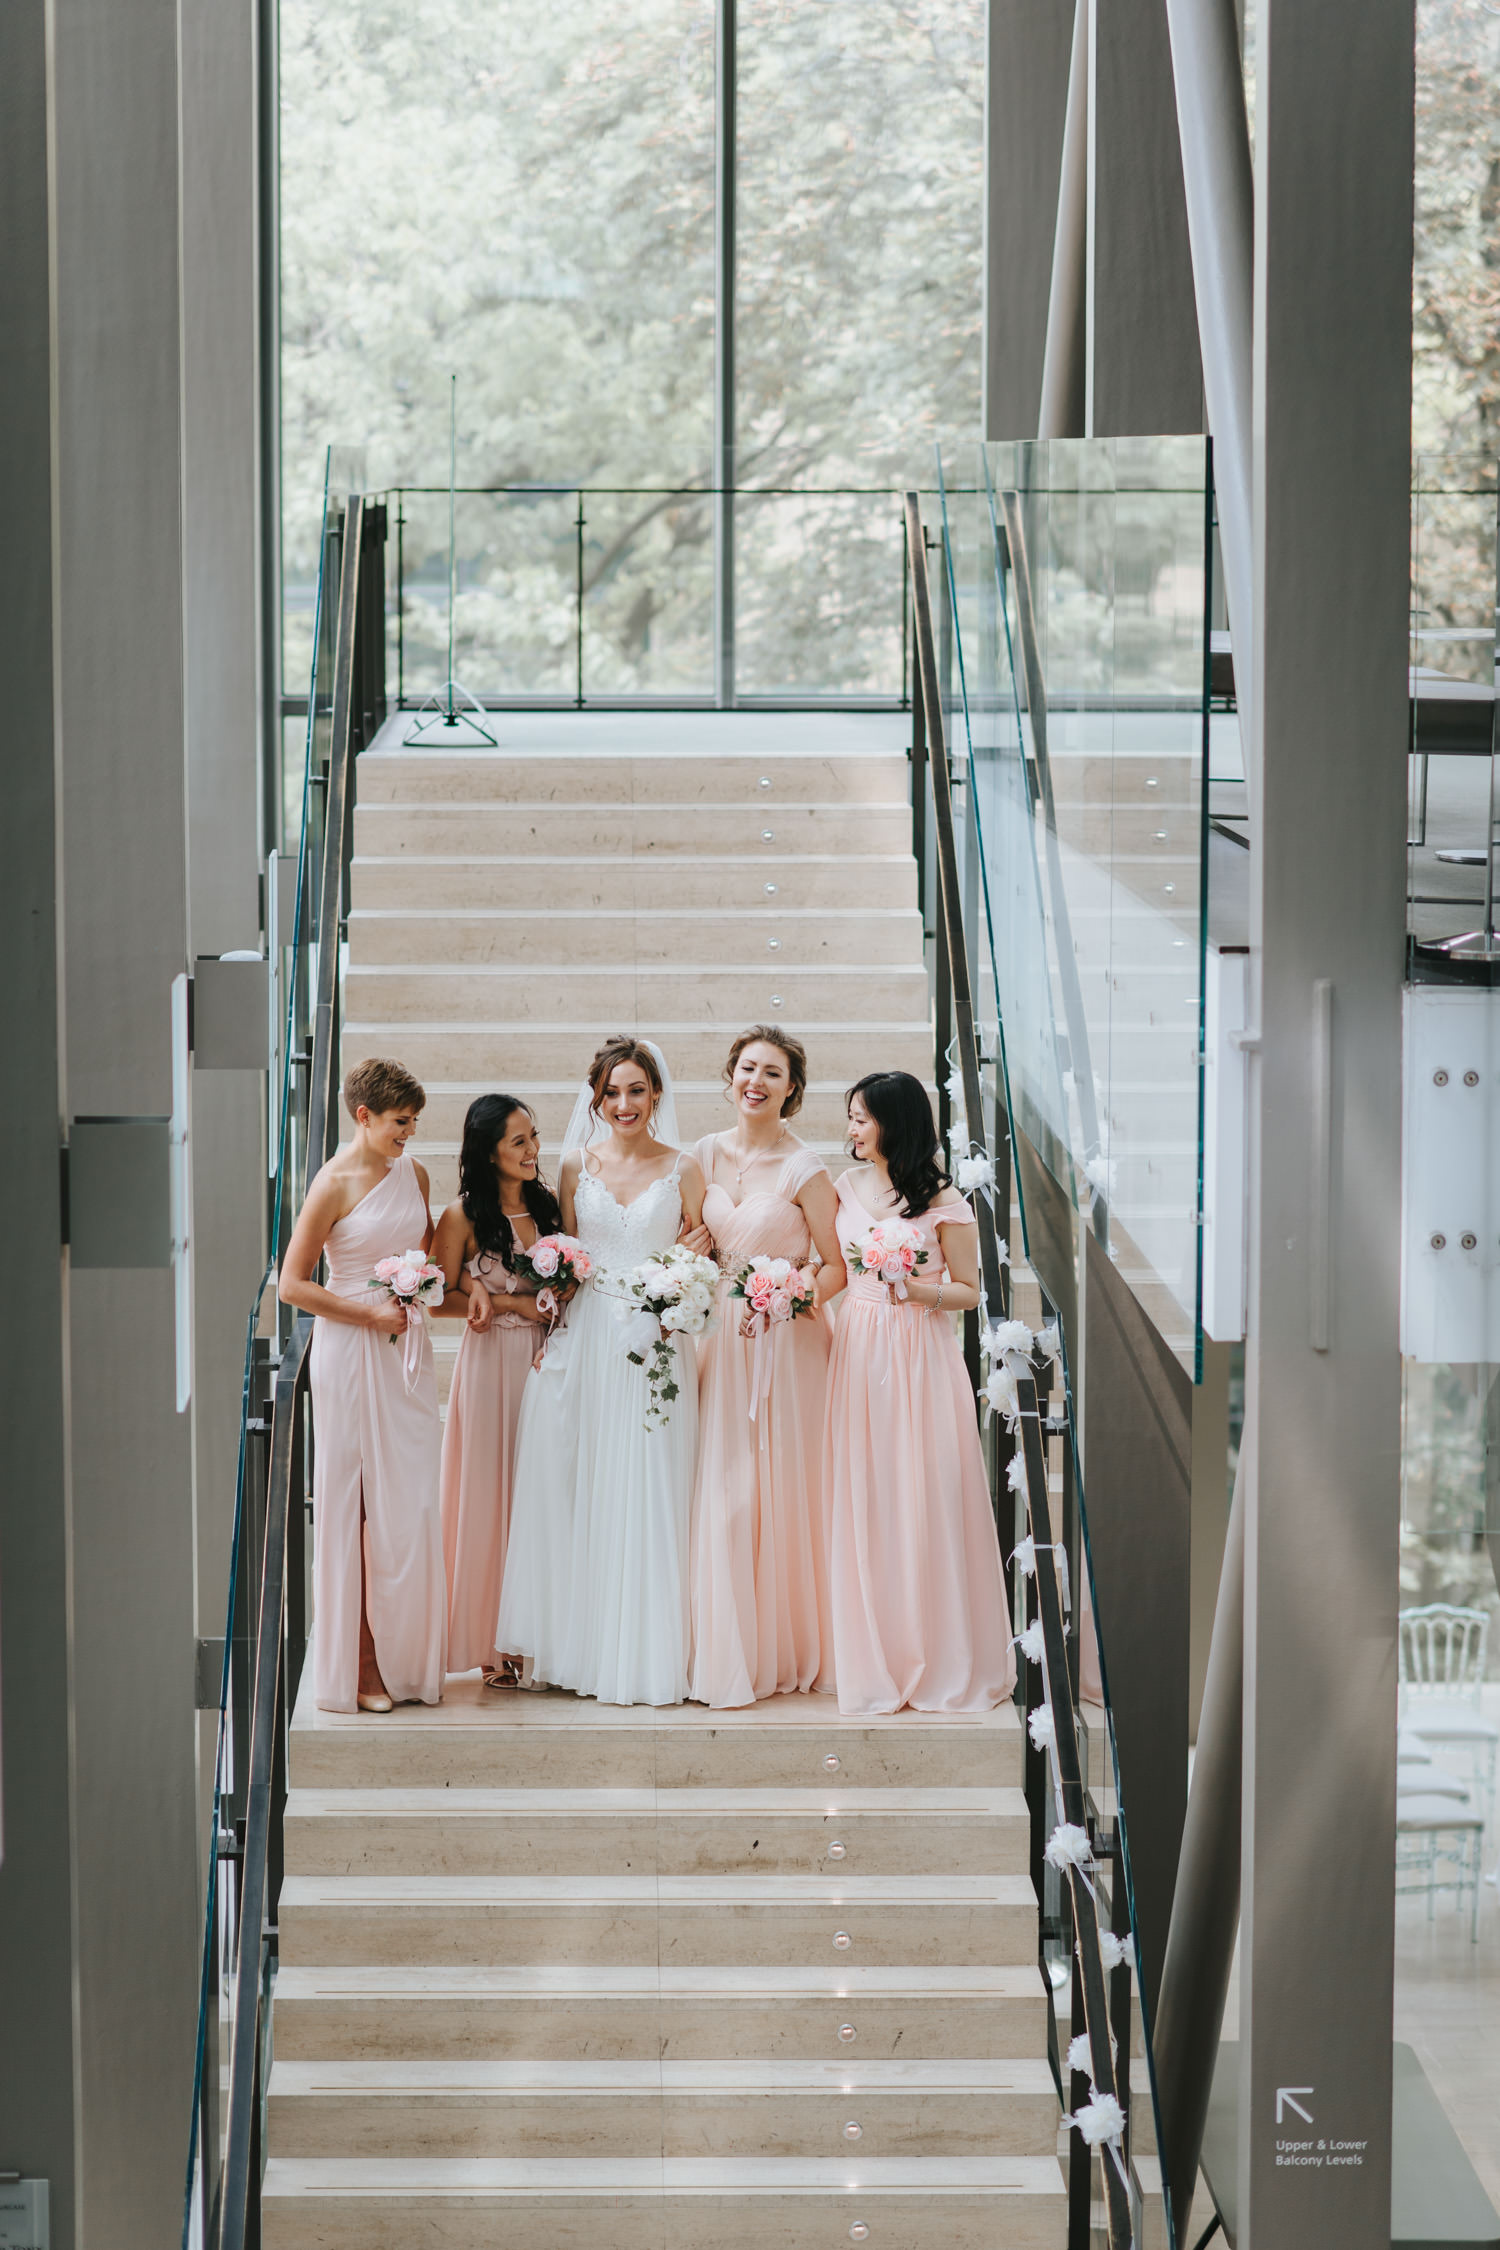 Toronto Royal Conservatory of Music Wedding Bridal Party at the Staircase